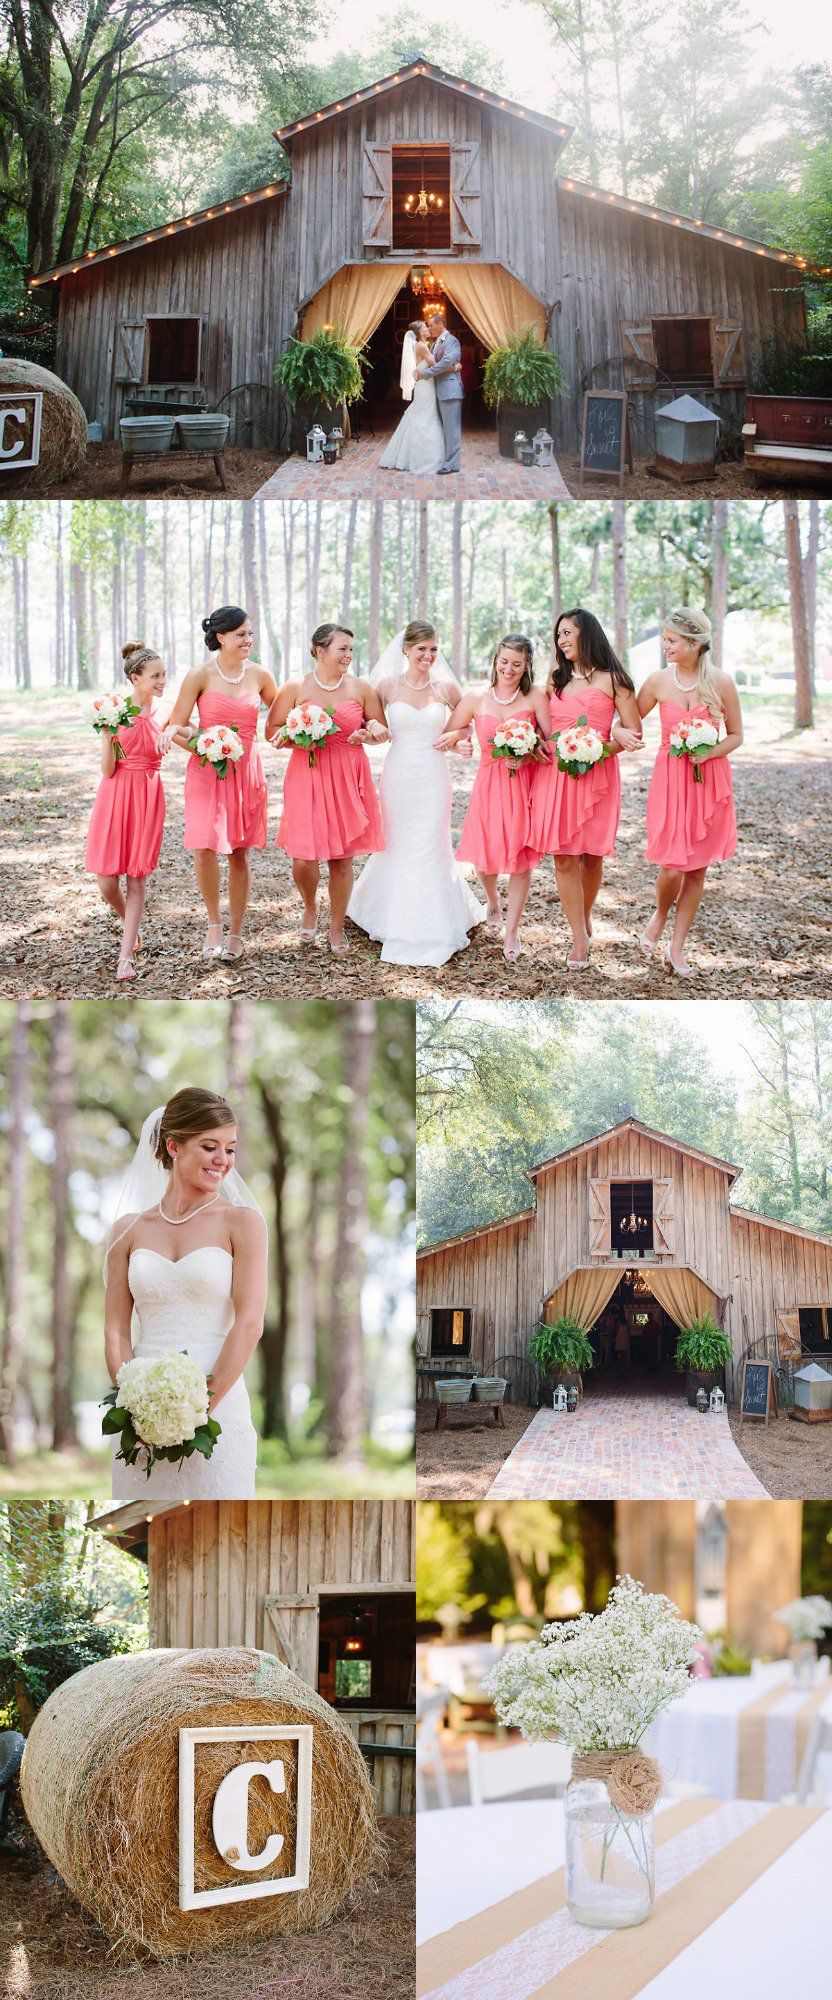 Southern elegant barn wedding barn elegant and wedding